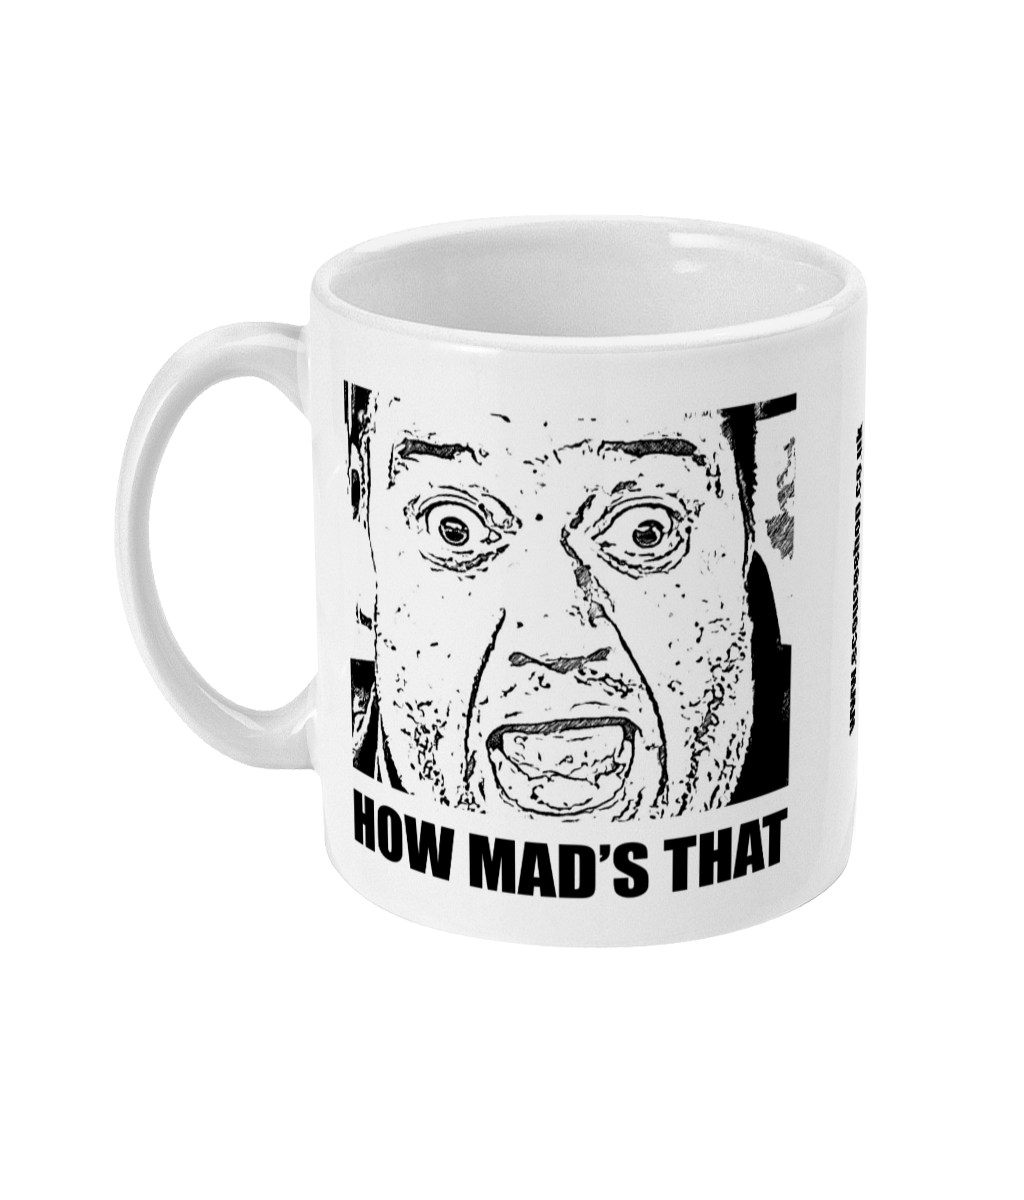 HOW MADS THAT - MUG